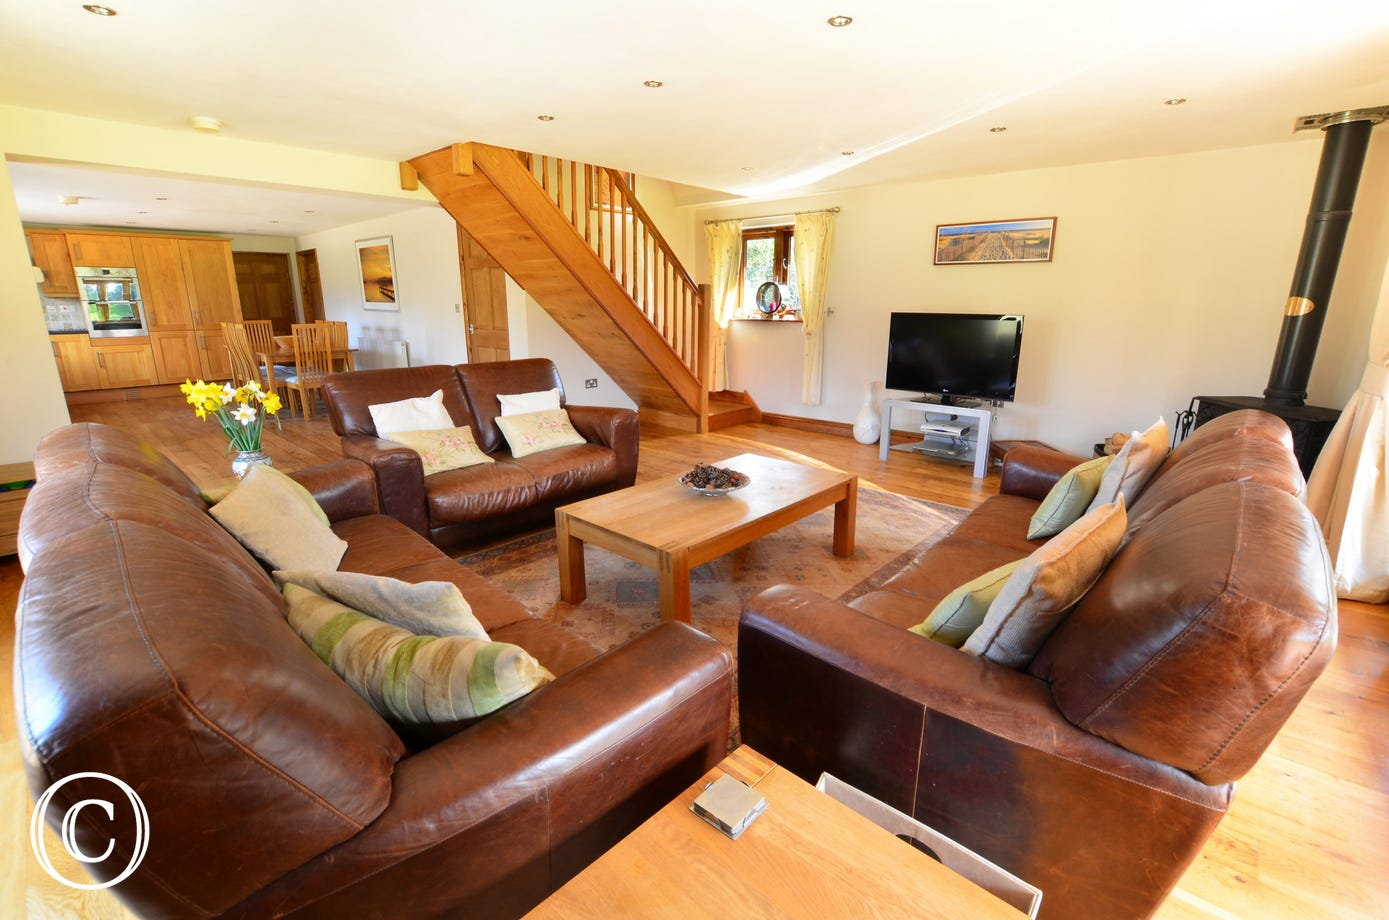 The sitting room has a wide screen TV with Sky and the attractive pine stairs lead up to the first floor.